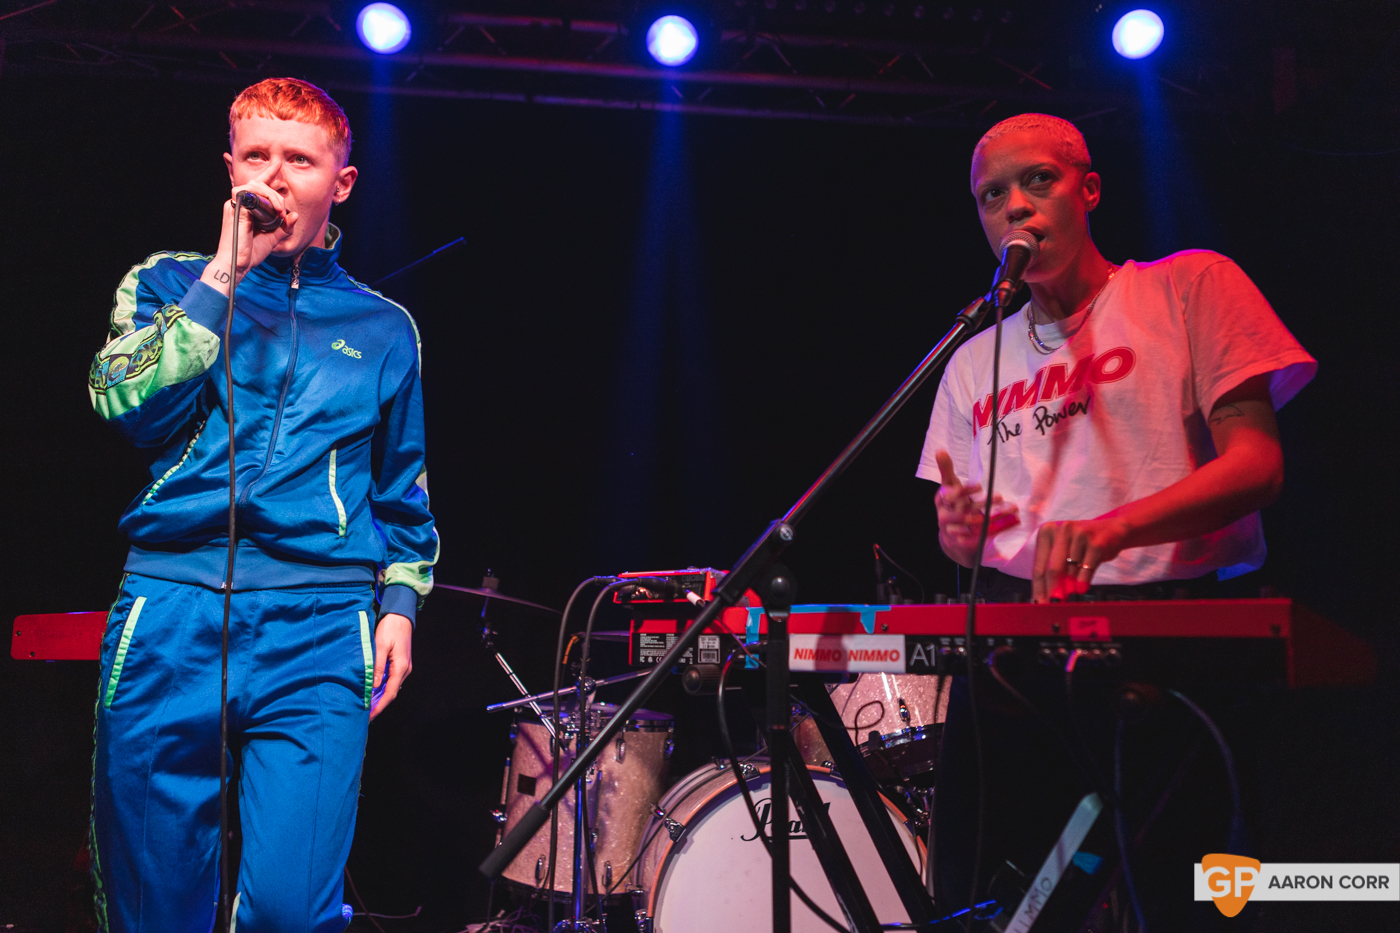 Nimmo at The Sound House on 21-Oct-2019-9188